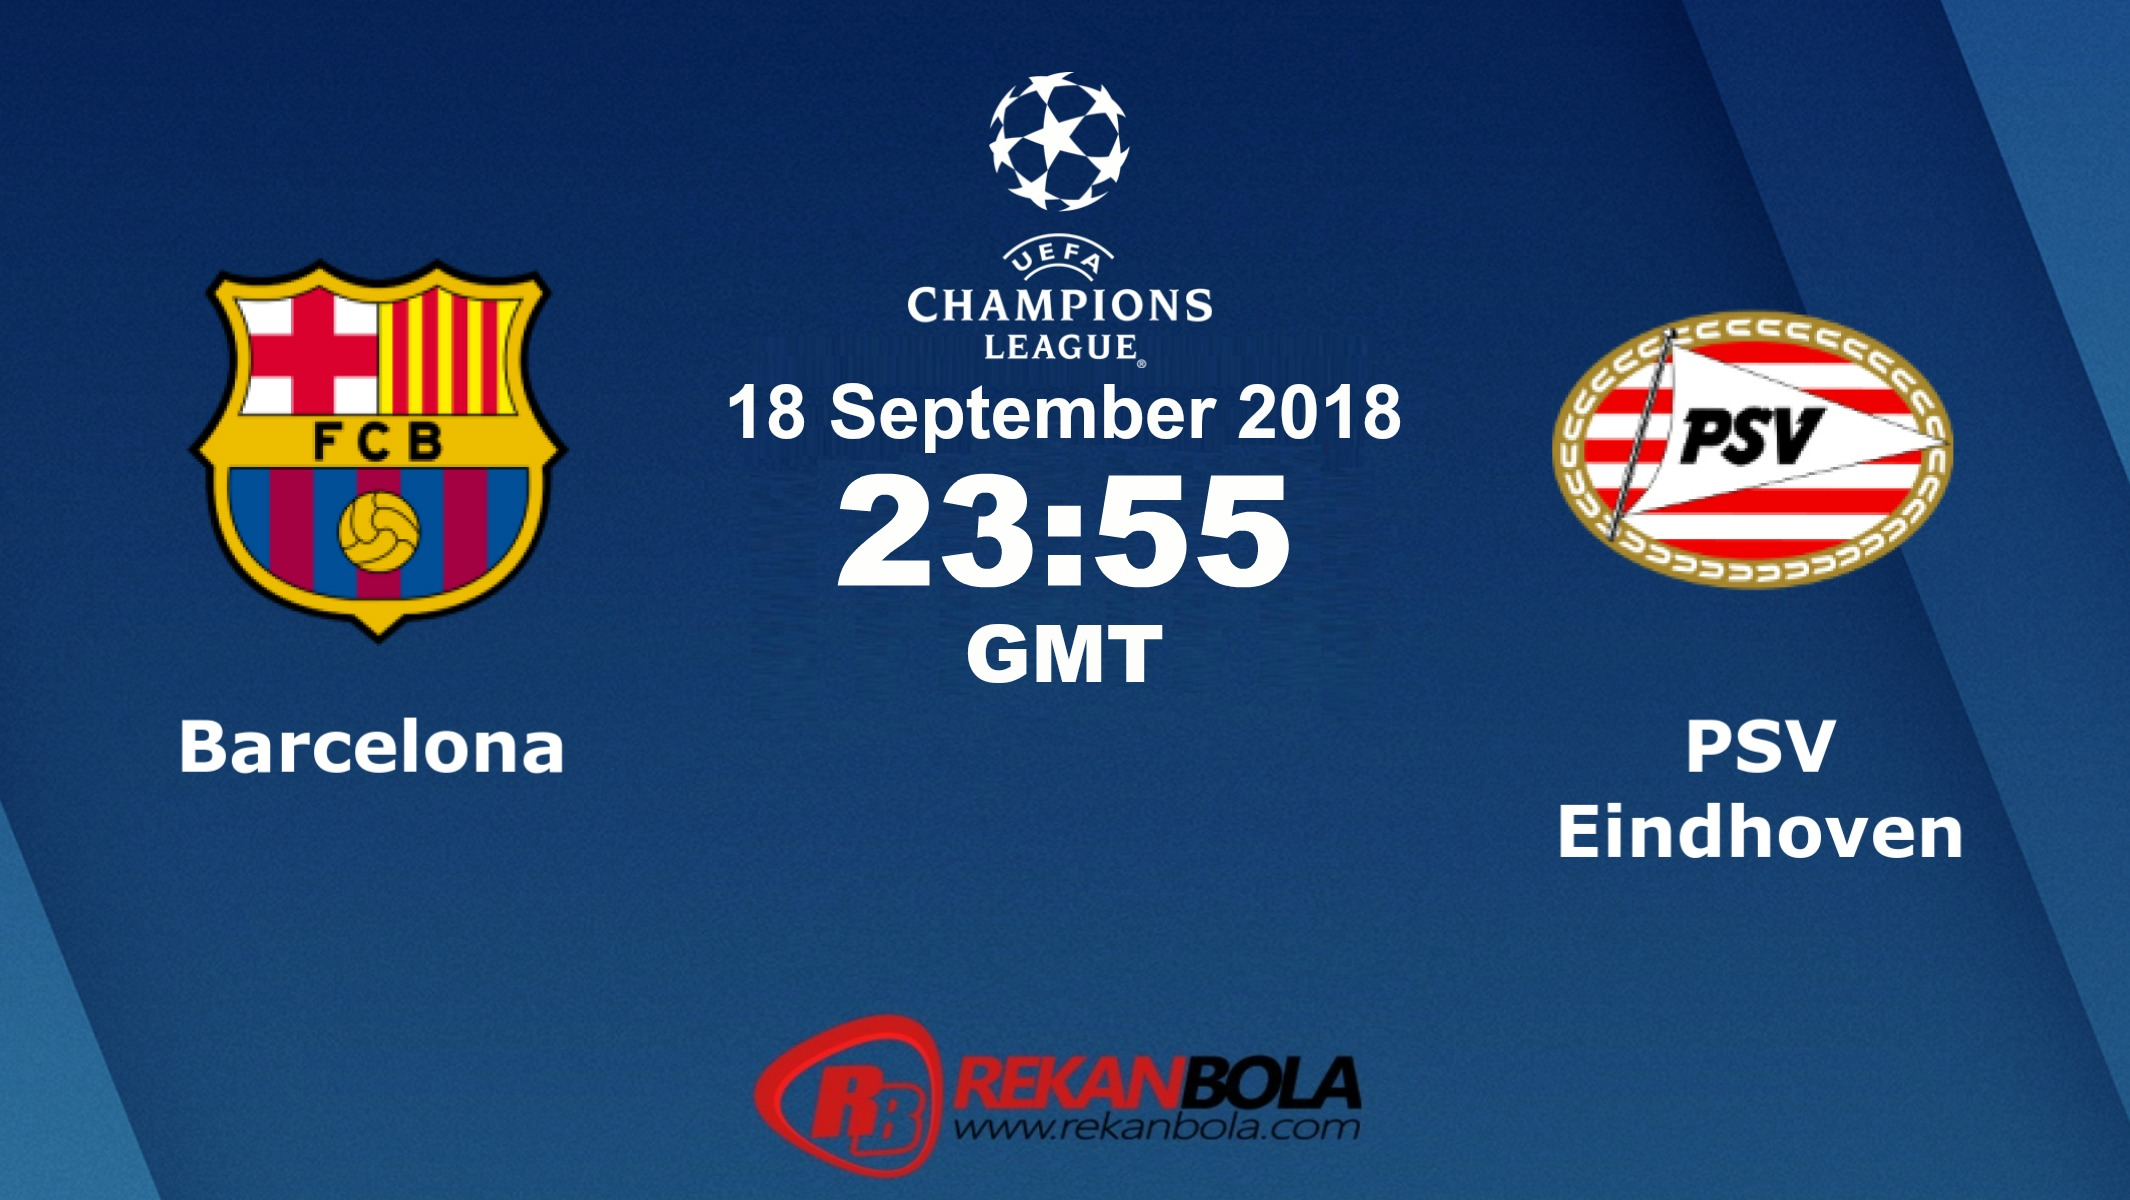 Nonton Siaran Live Streaming Barcelona Vs PSV 18 September 2018